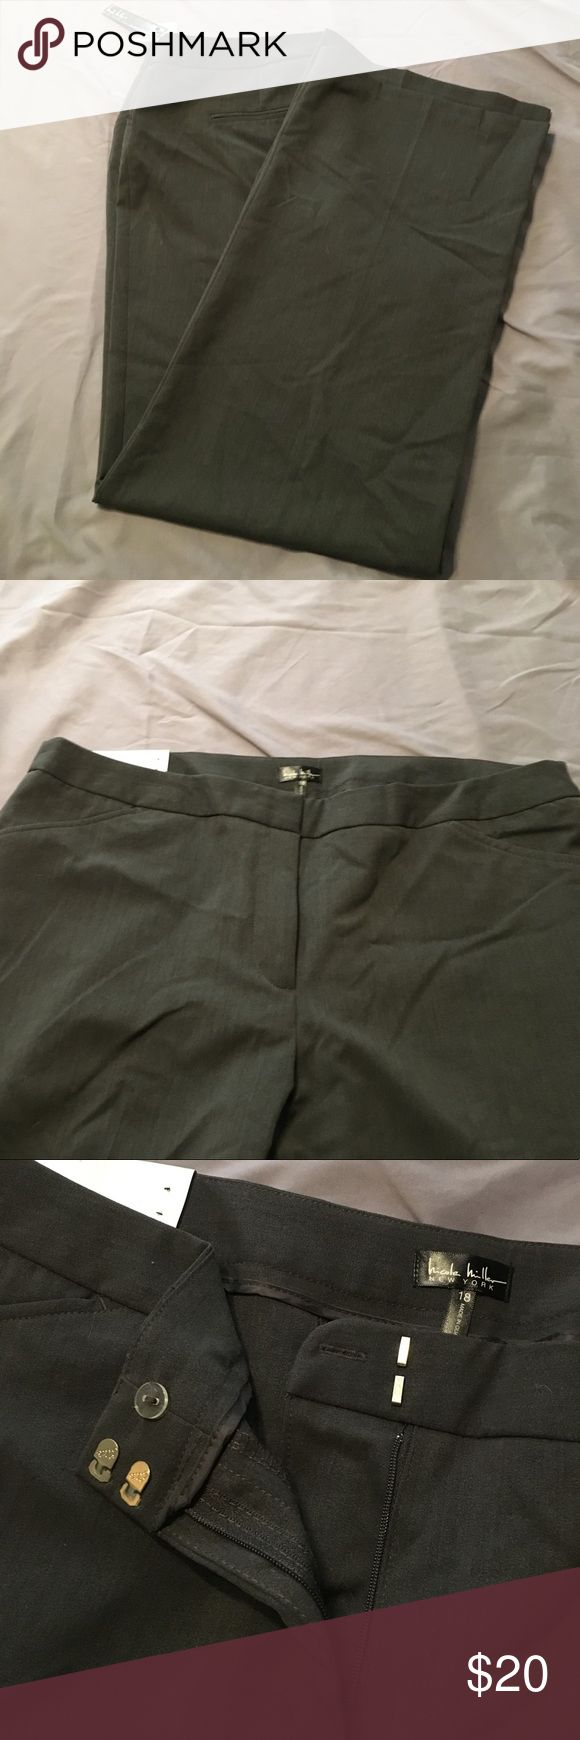 Dark Charcoal Heather Gray Trousers Dark gray classic Trousers. NWT Nicole Miller Pants Trousers